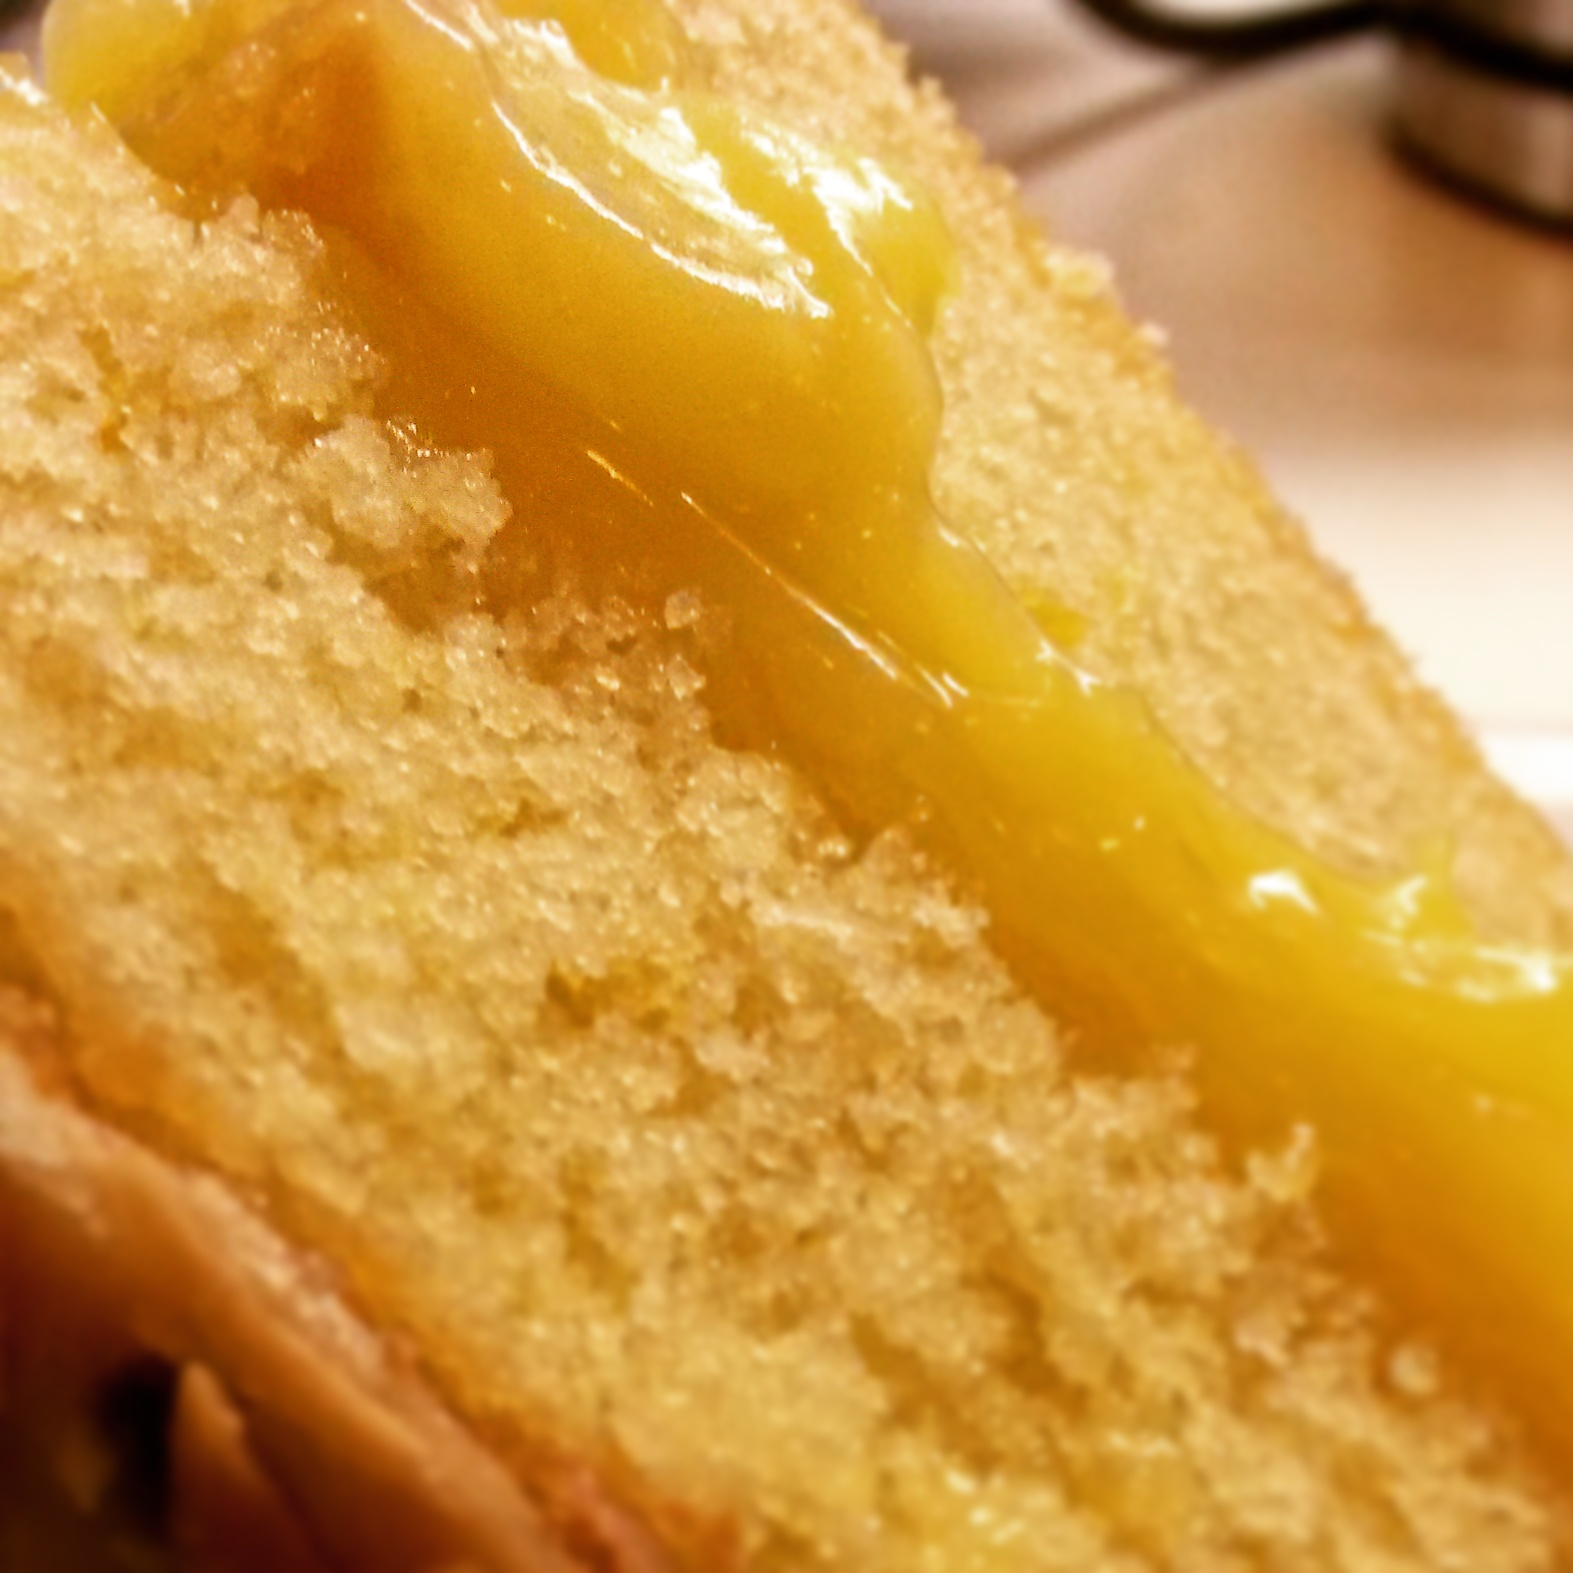 SIL'S VICTORIA SPONGE WITH LEMON CURD AND PASSIONFRUIT ICING